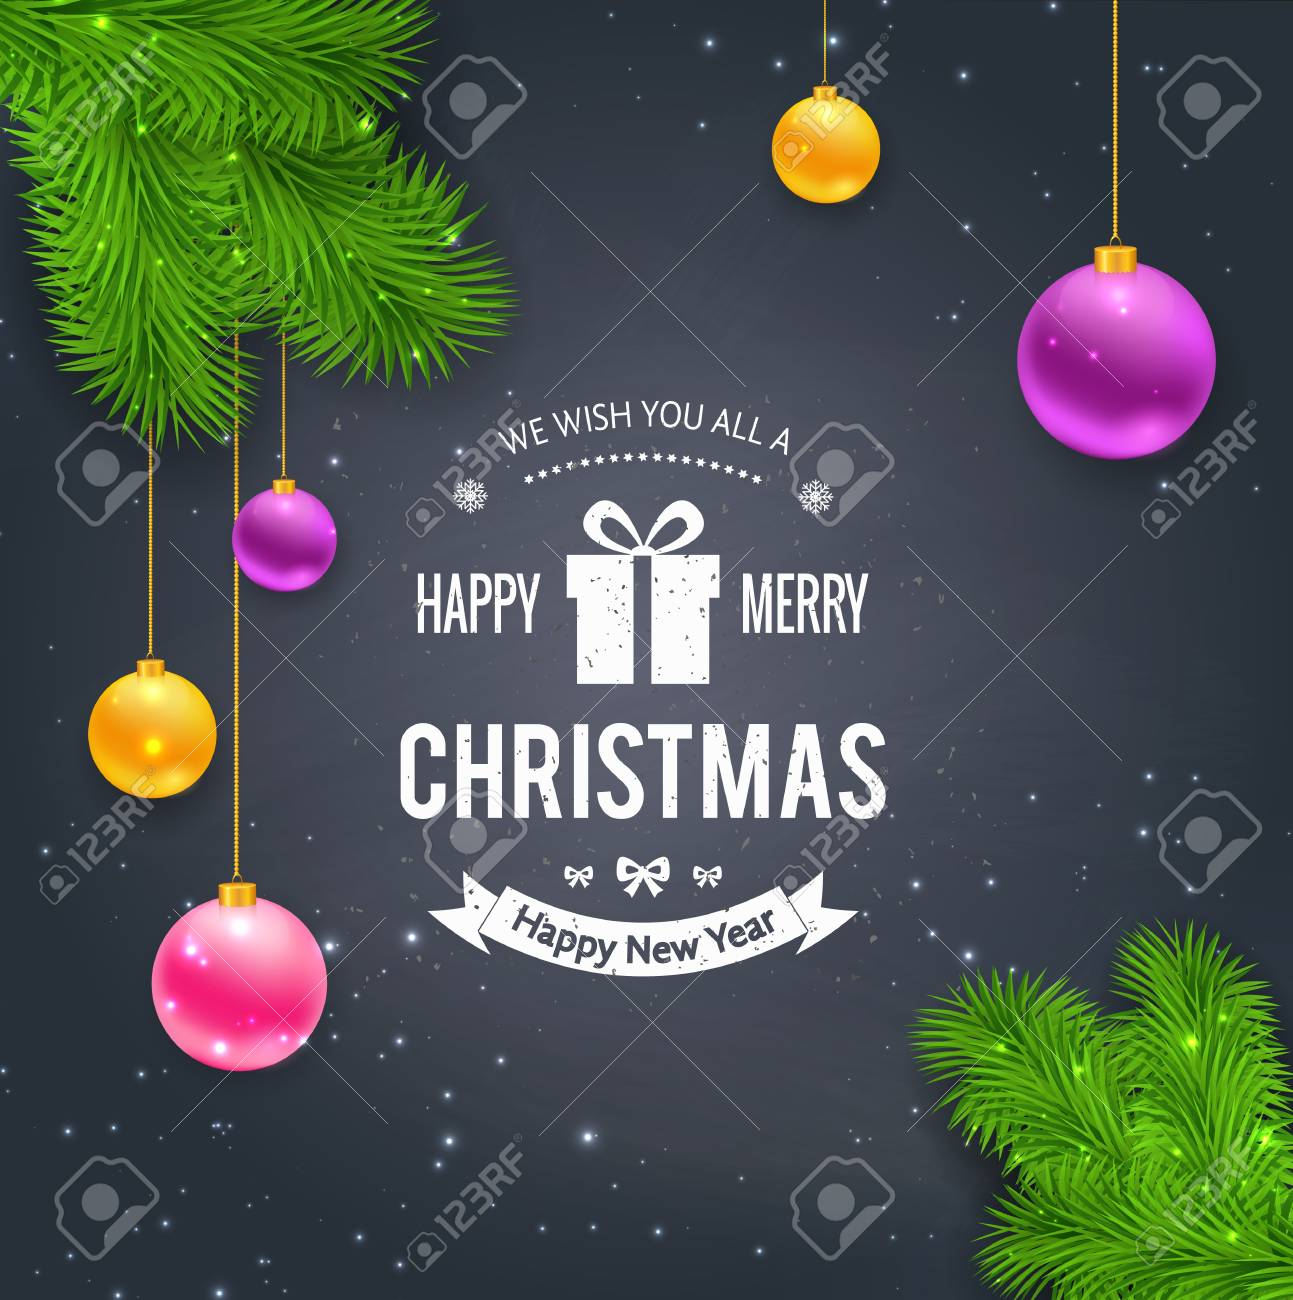 Merry Christmas Greetings On Chalkboard Royalty Free Cliparts